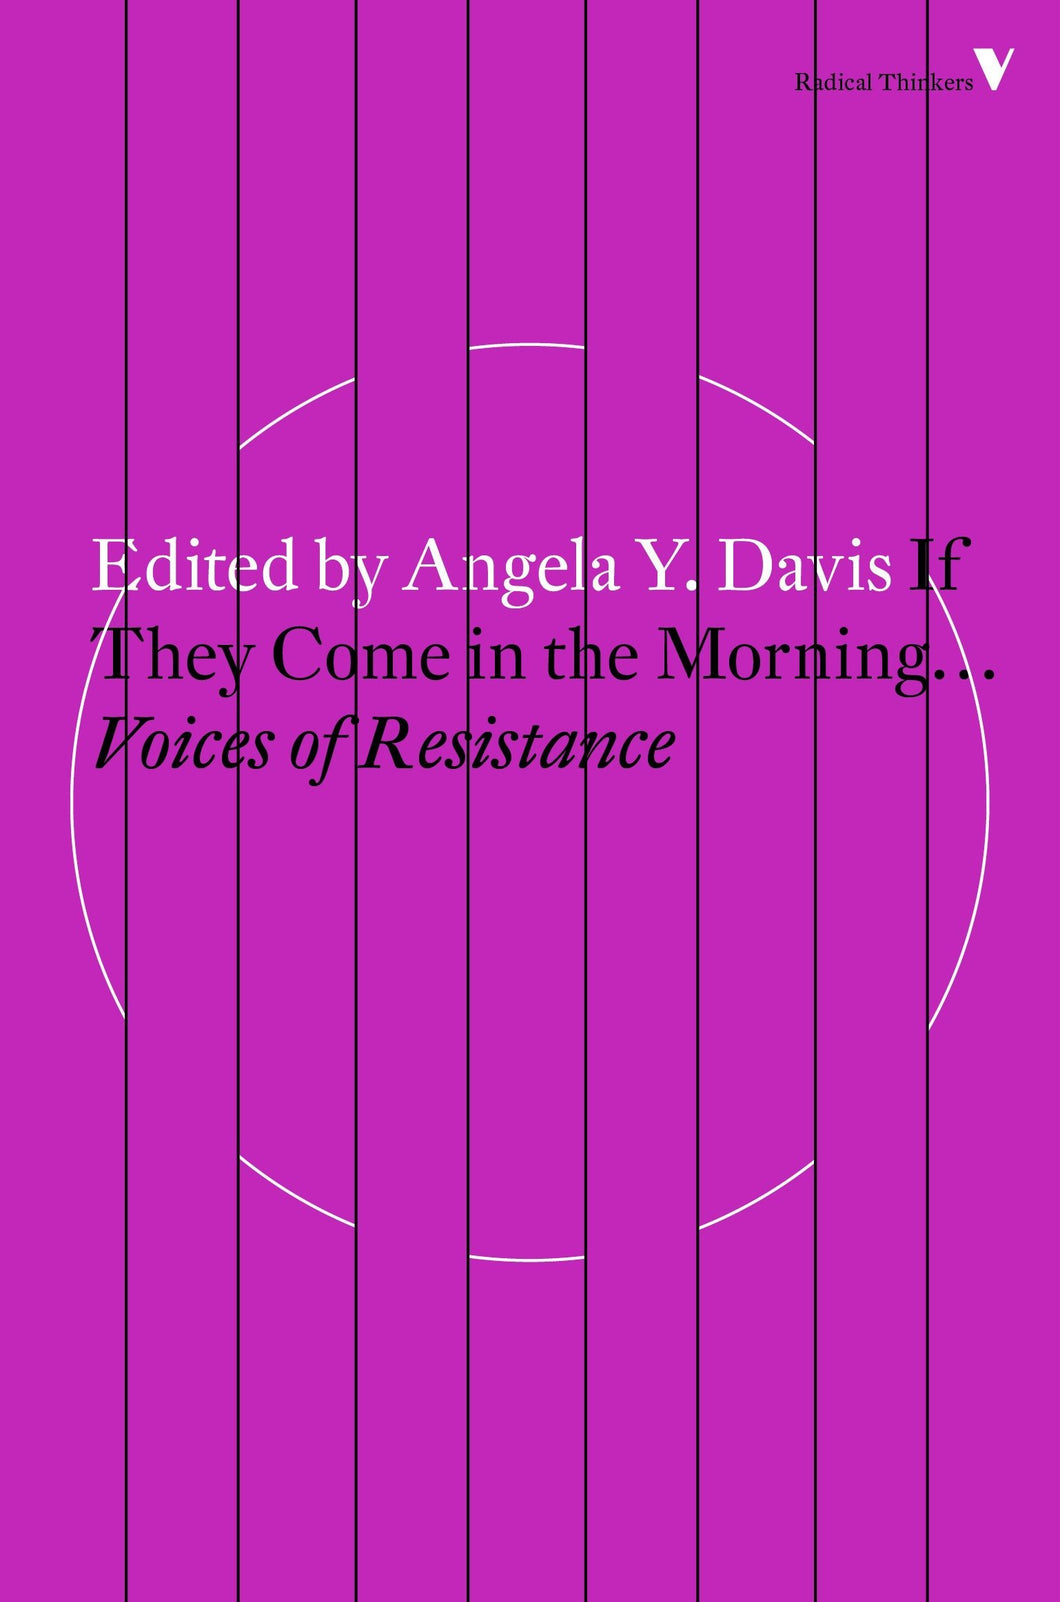 If They Come in the Morning...Voices of Resistance by Angela Y. Davis